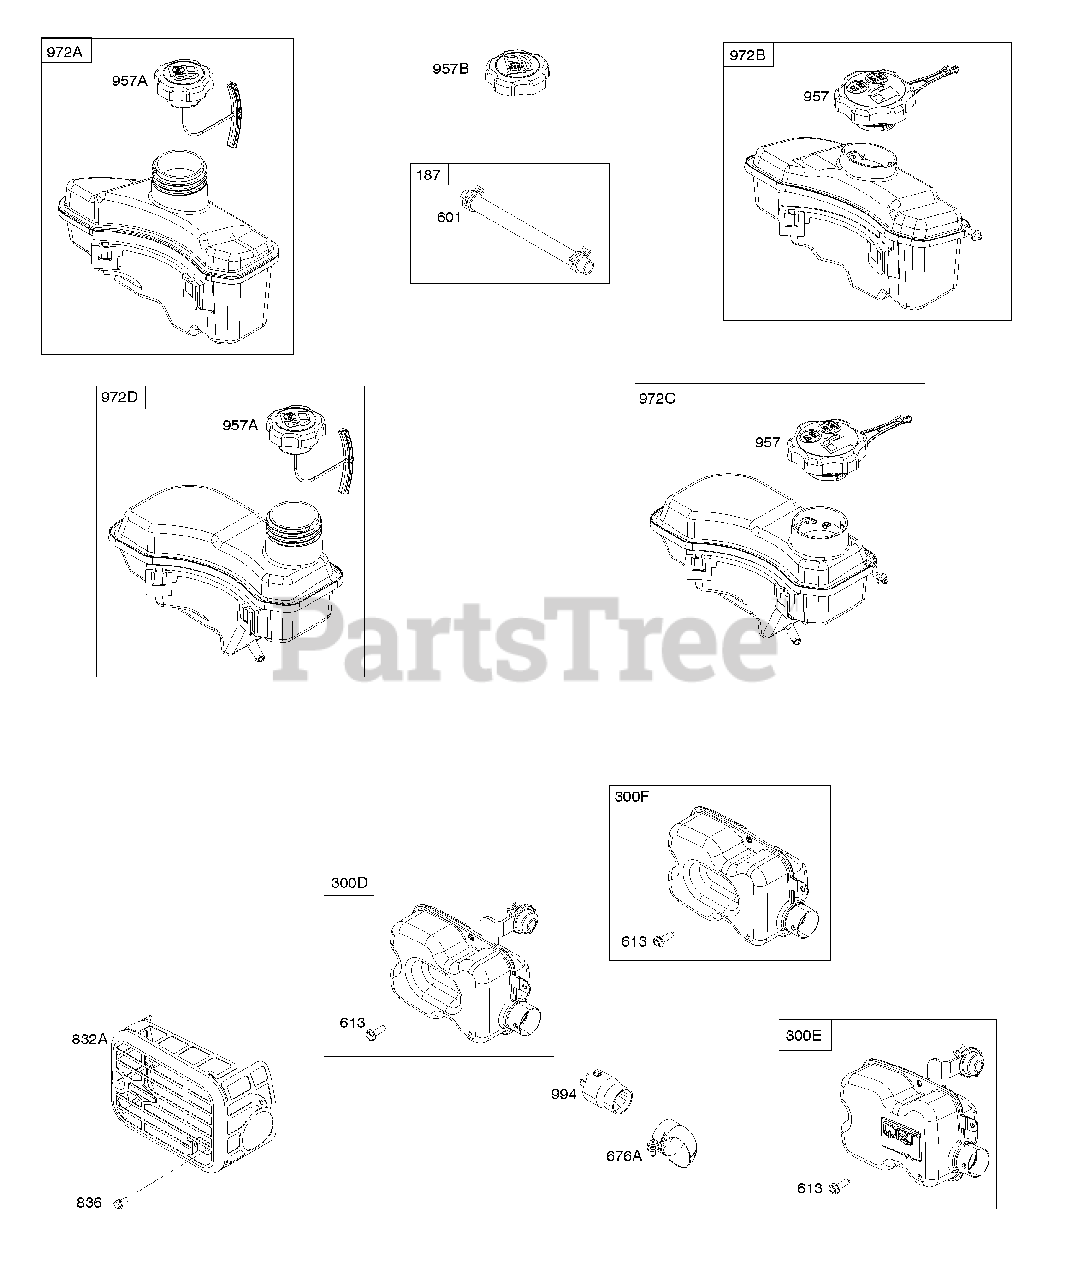 briggs & stratton 104m0b-0145-h1 - briggs & stratton vertical engine  exhaust system, fuel supply parts lookup with diagrams | partstree  partstree